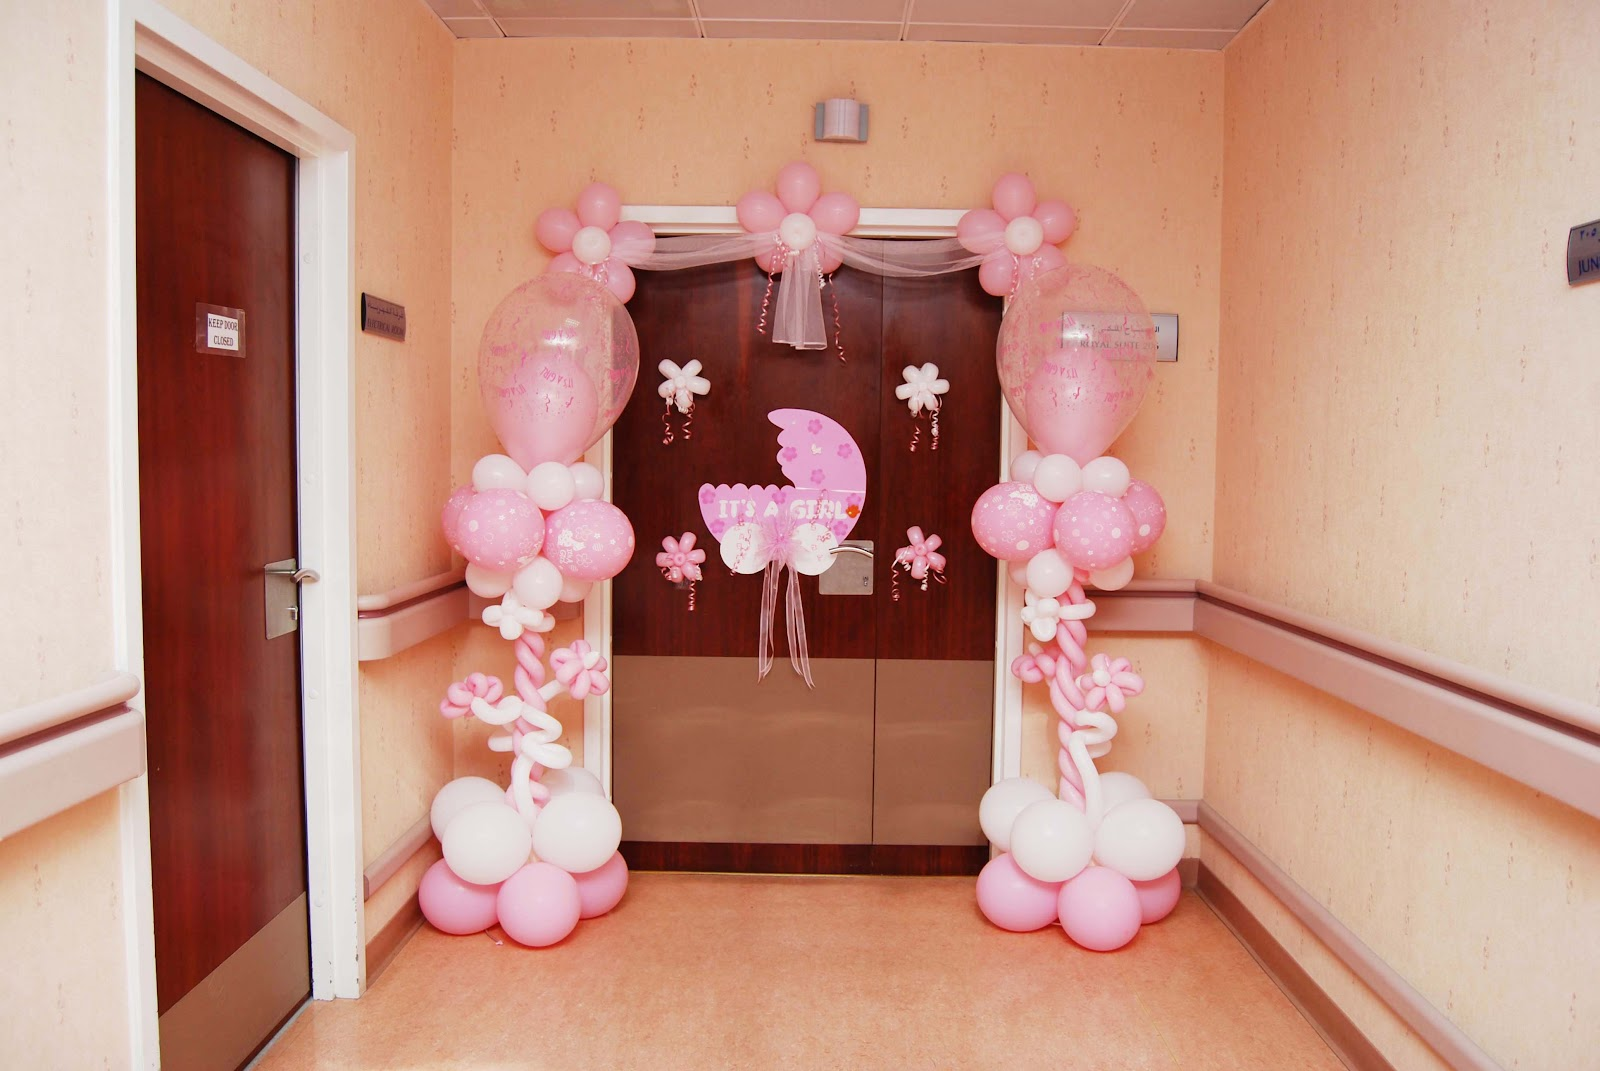 Events managements al wasl hospital decoration for Baby decoration ideas